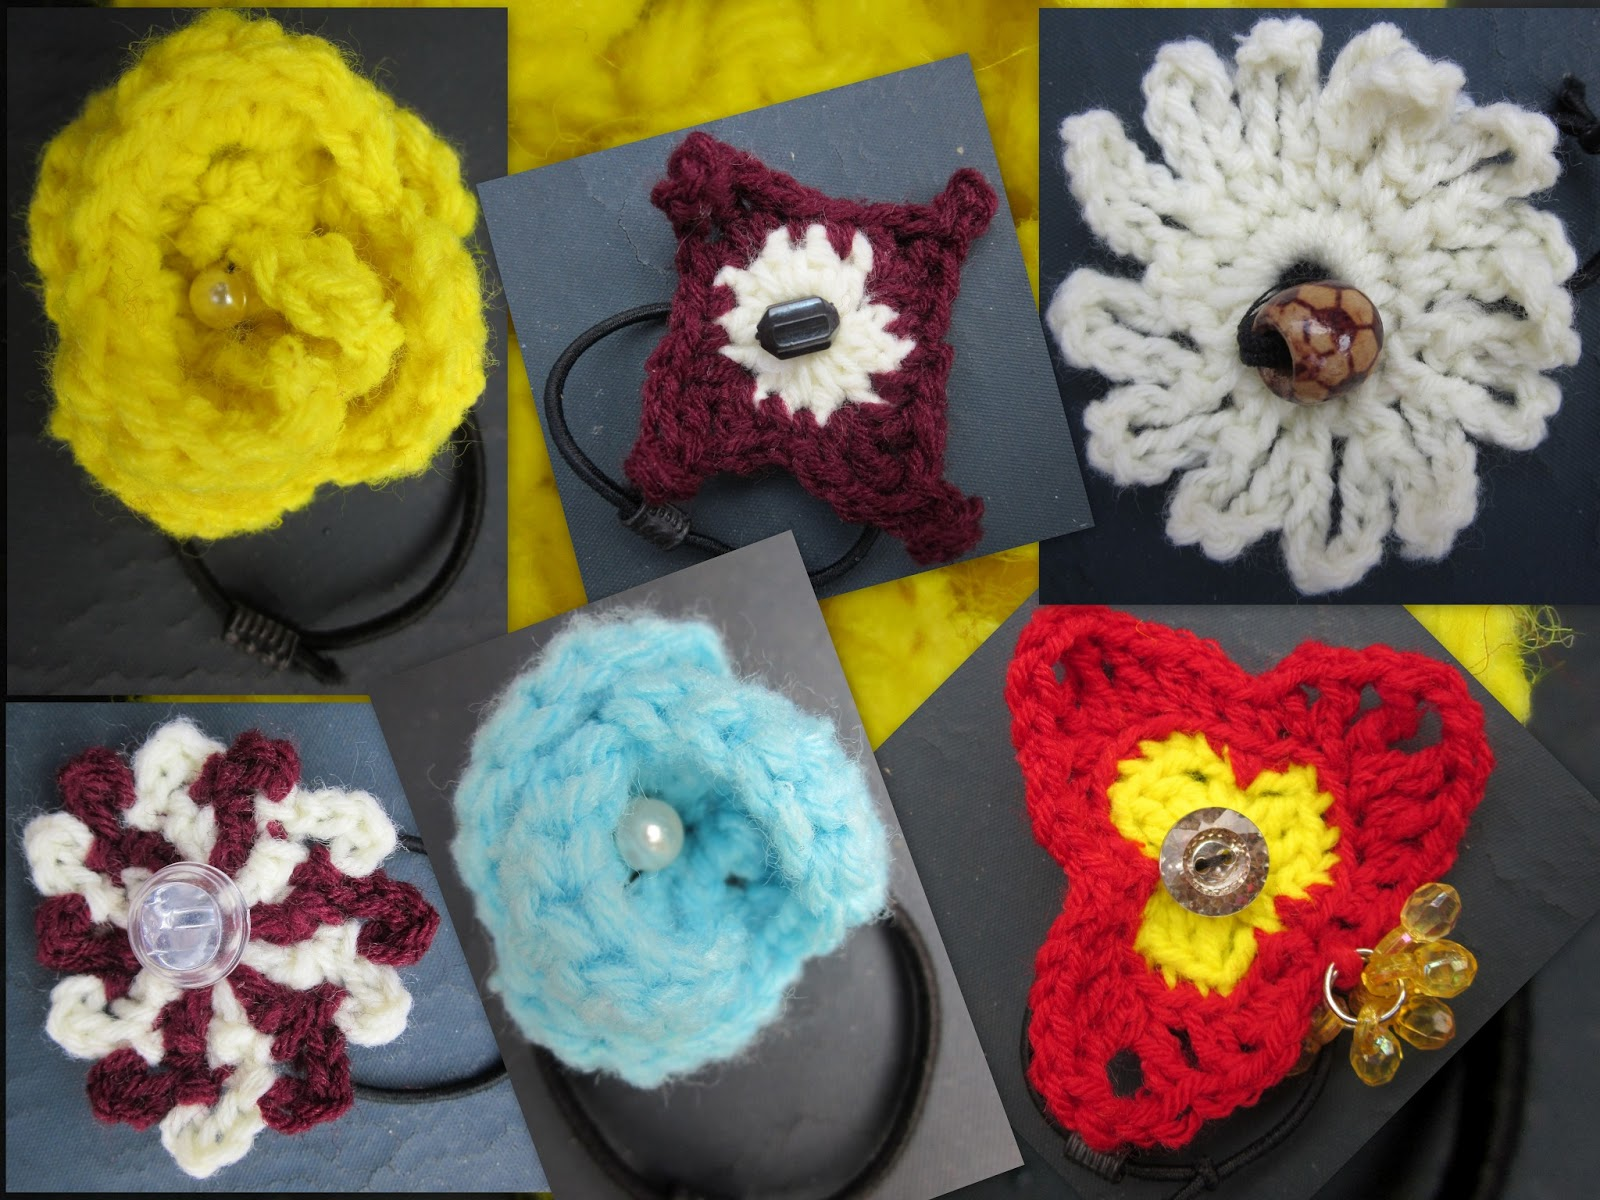 CREATIVE HALL: CROCHET FLOWER RUBBER BANDS